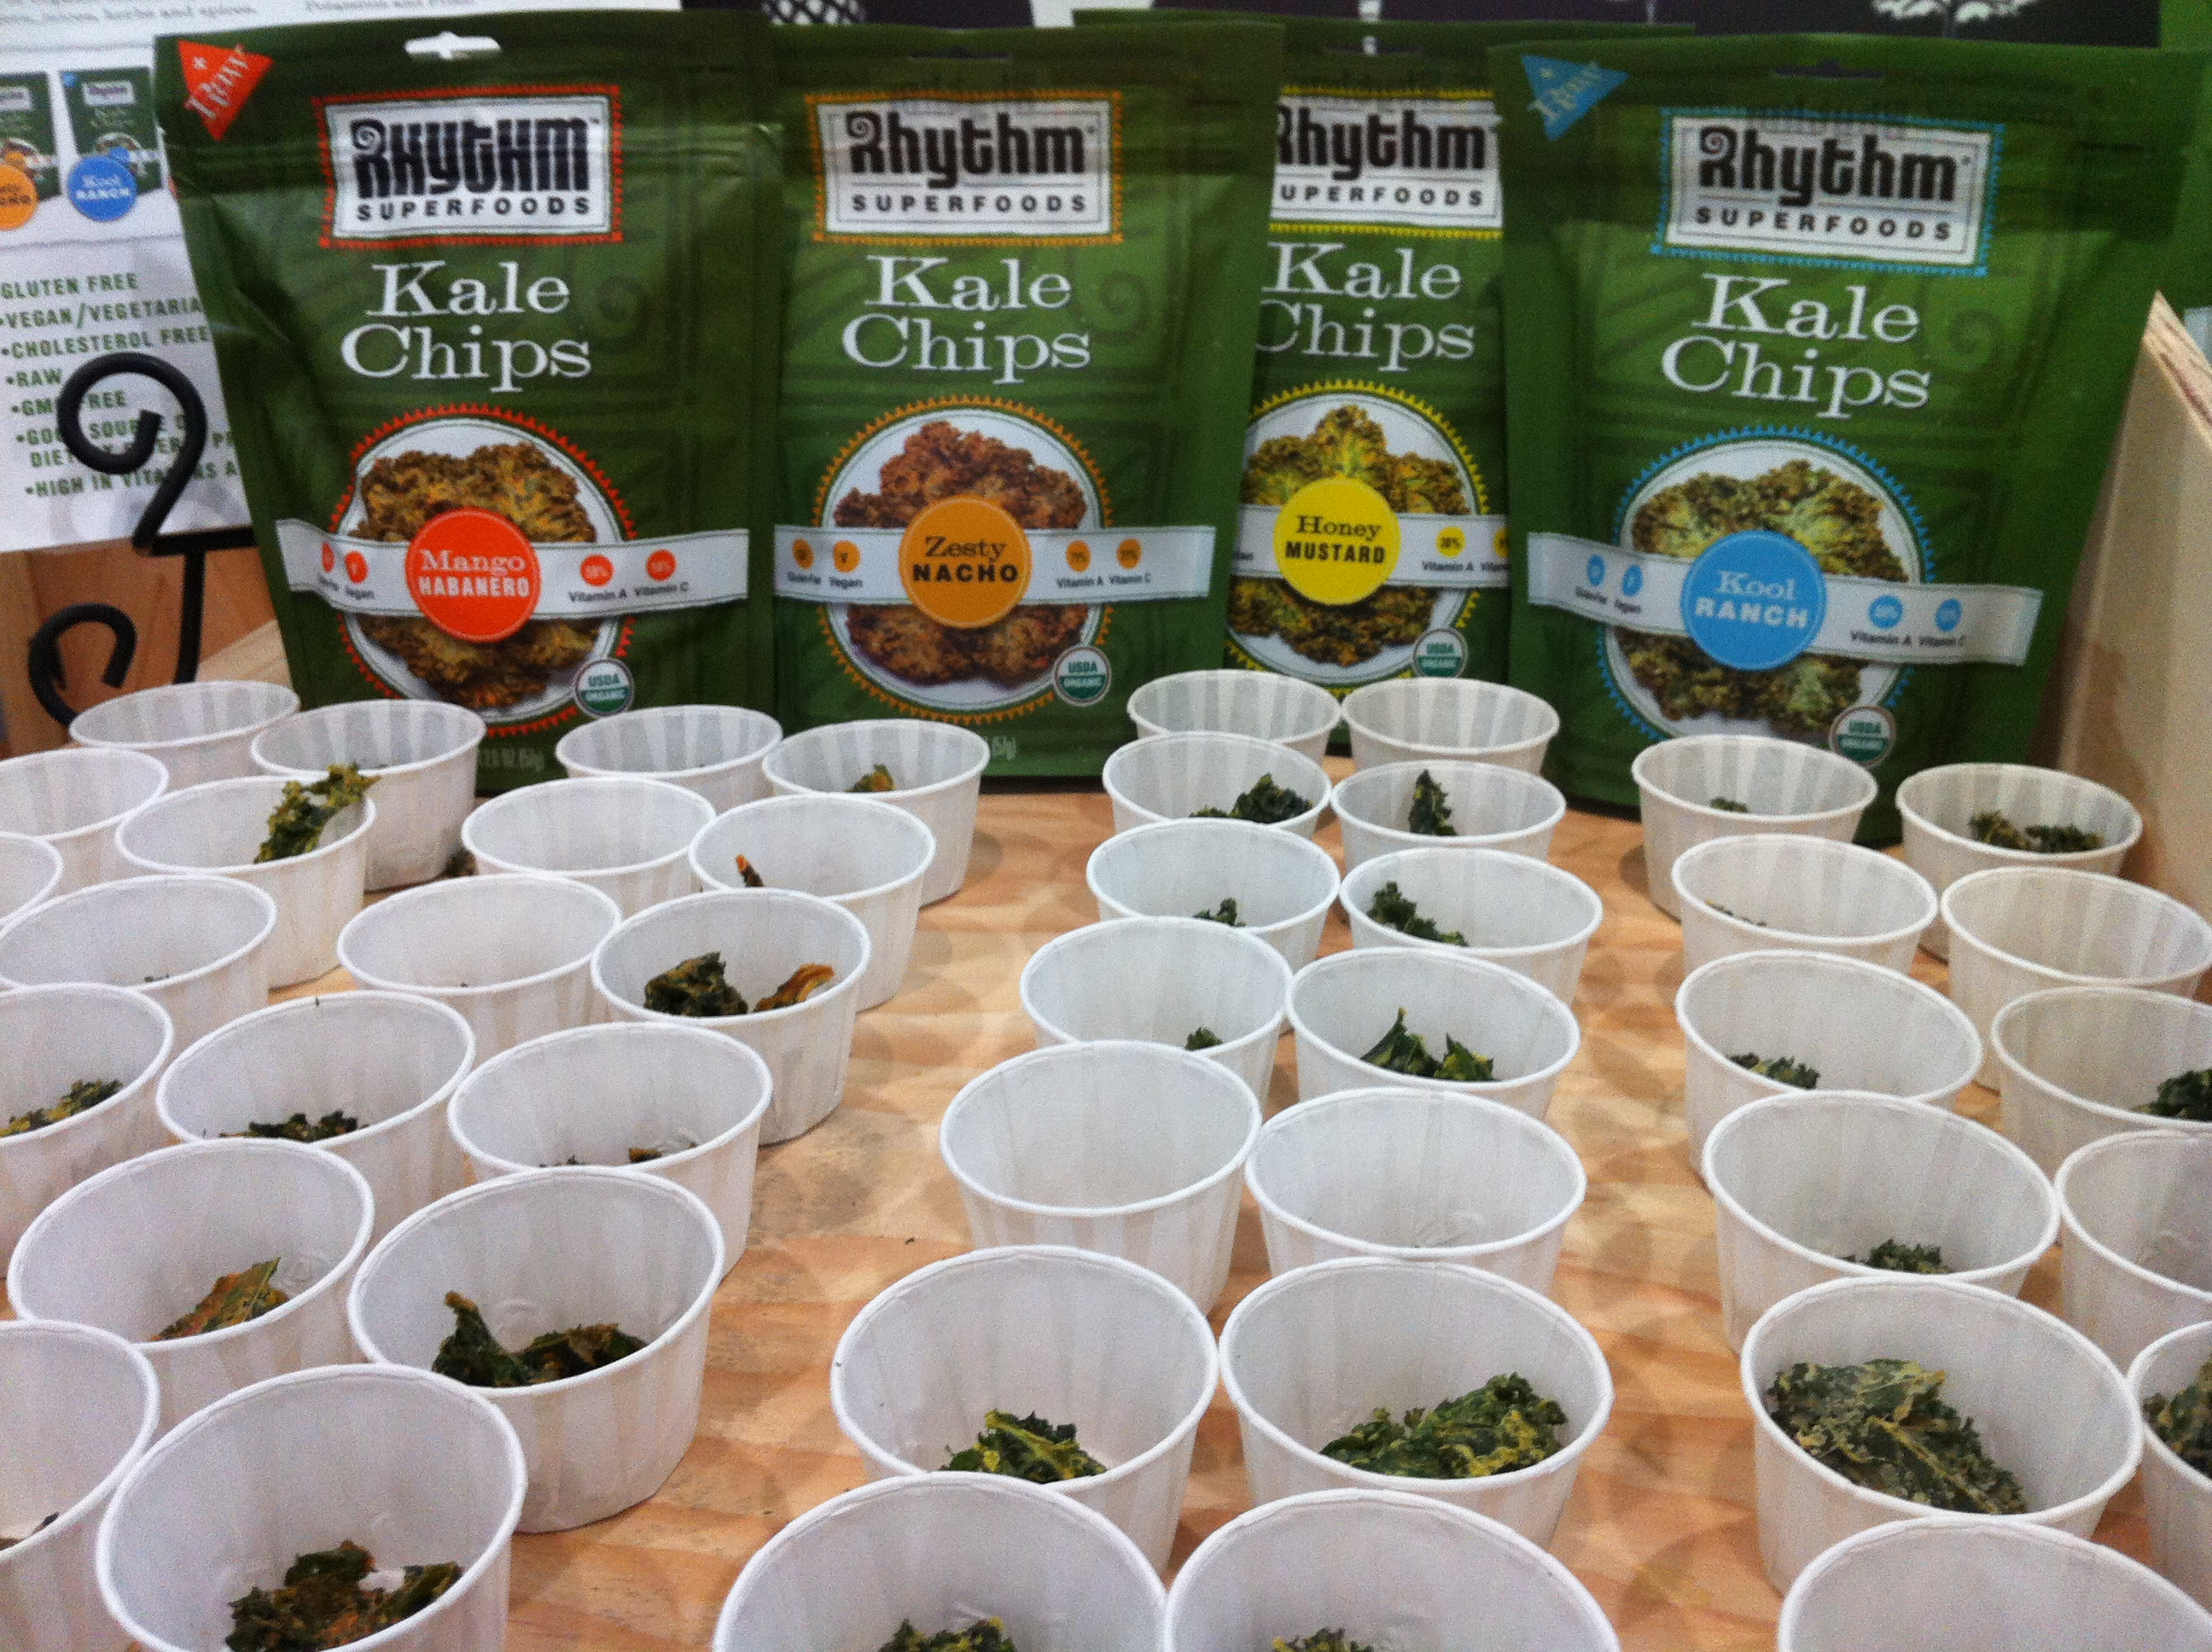 Delicious kale chips from a great company - rhythm super foods